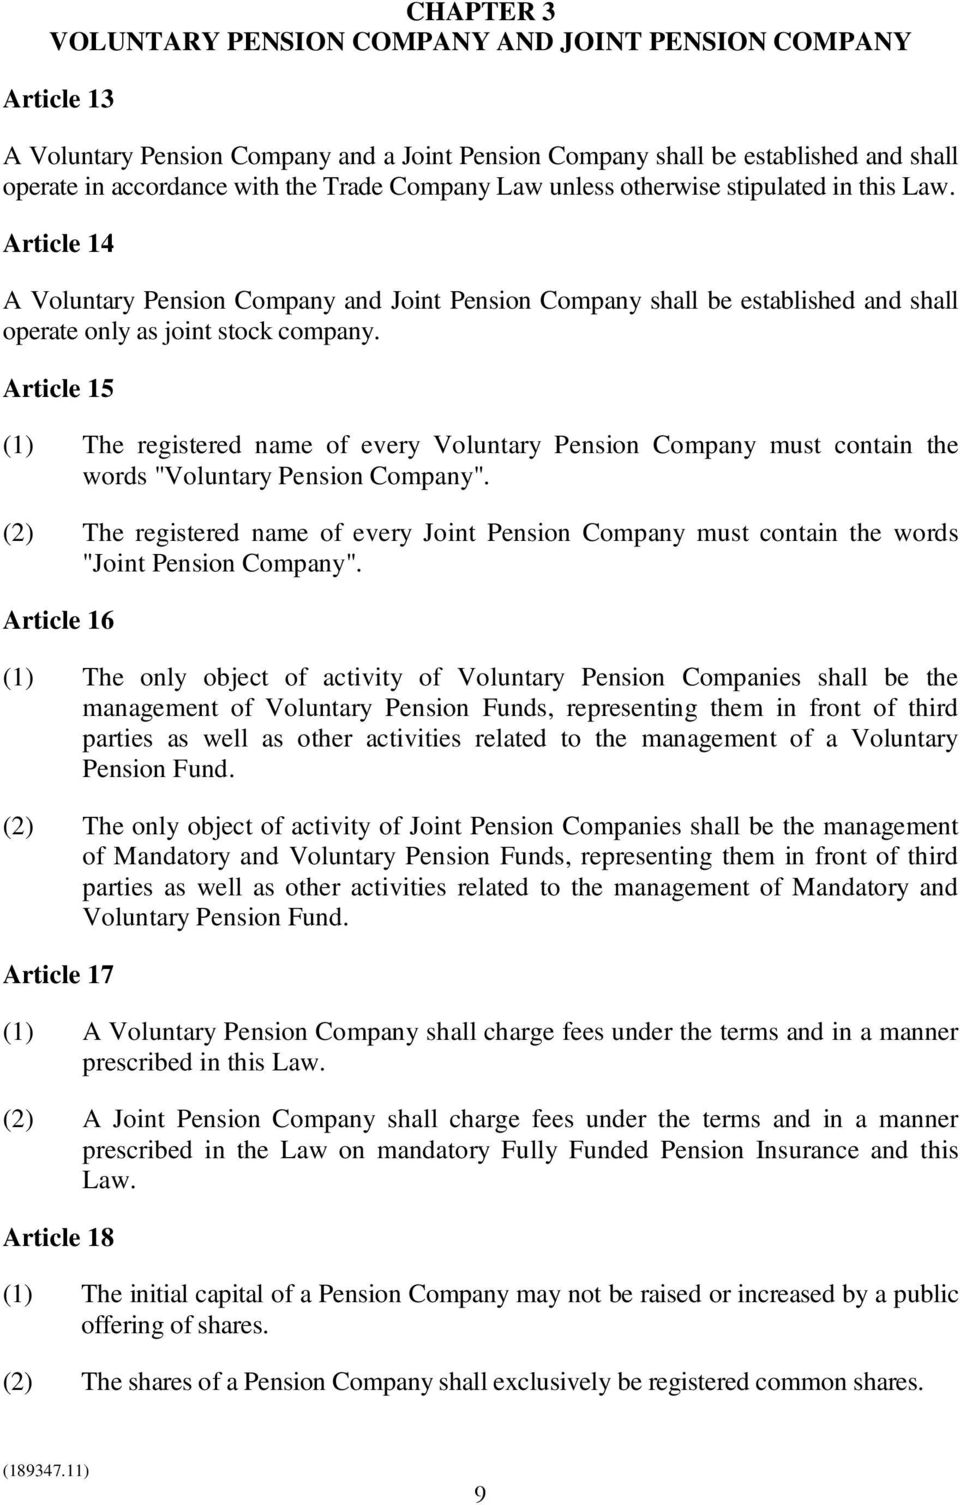 "Article 15 (1) The registered name of every Voluntary Pension Company must contain the words ""Voluntary Pension Company""."